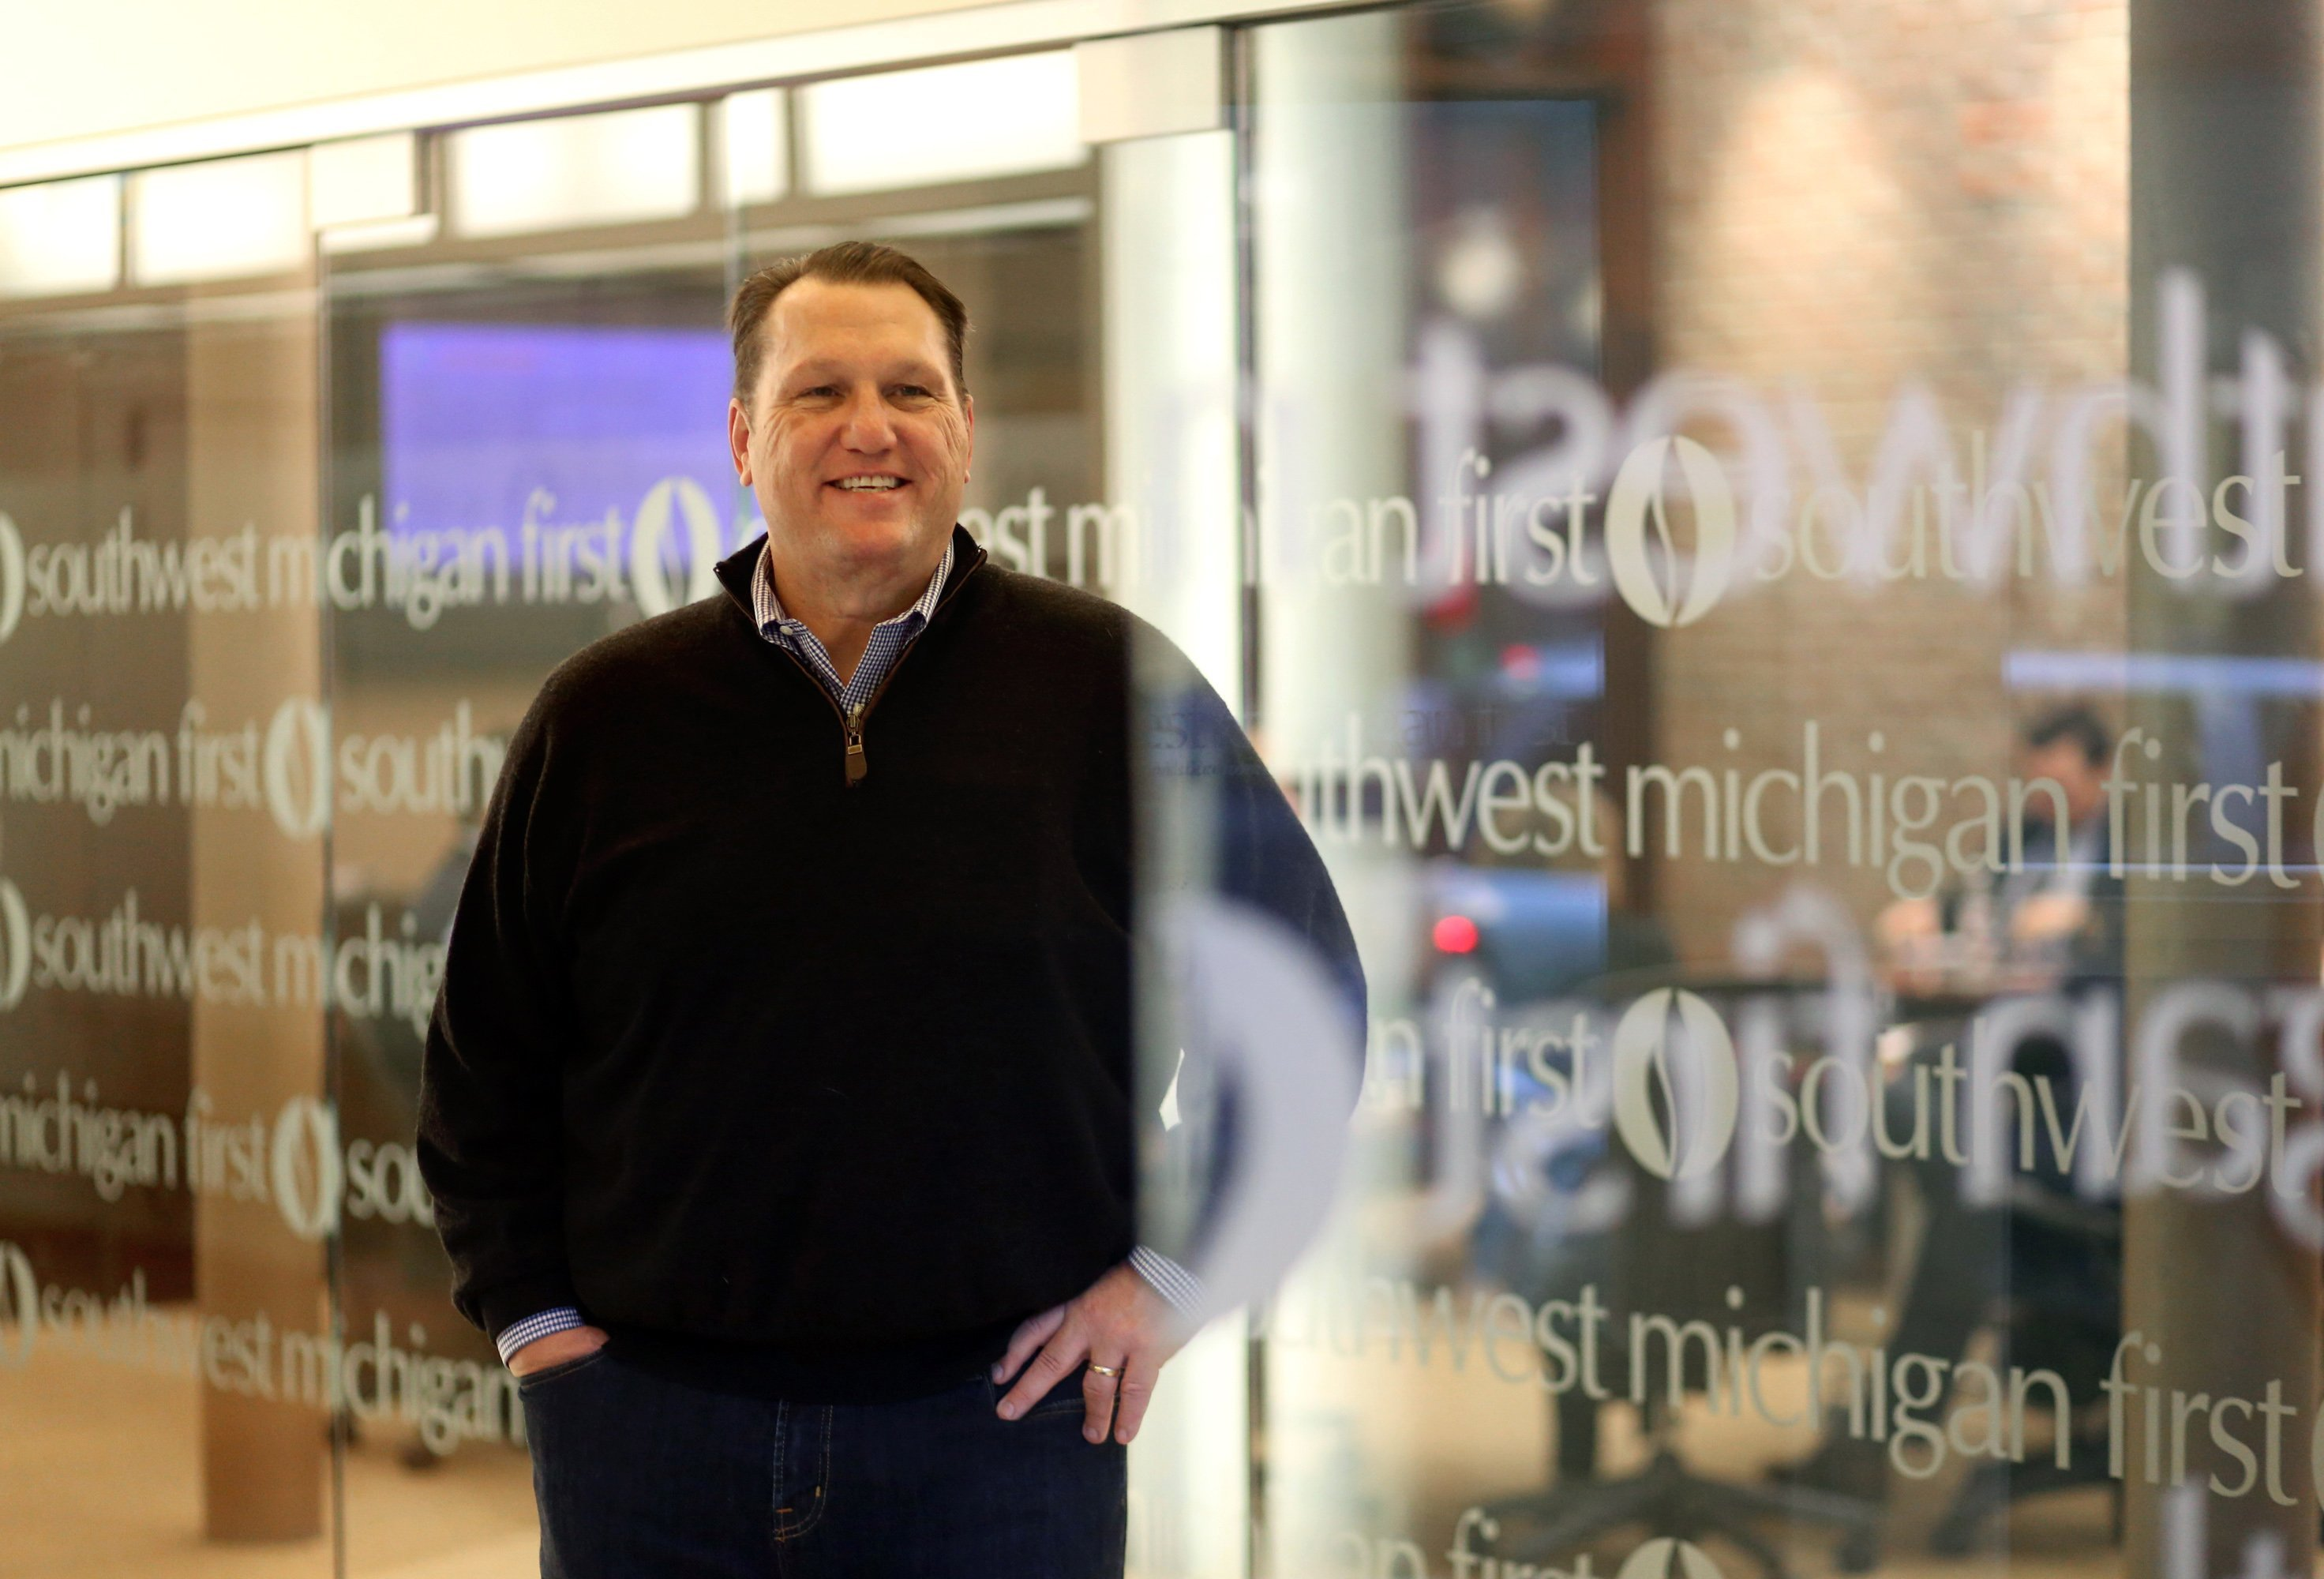 33 projects worth $690M last year created 1,883 new jobs in Southwest Michigan